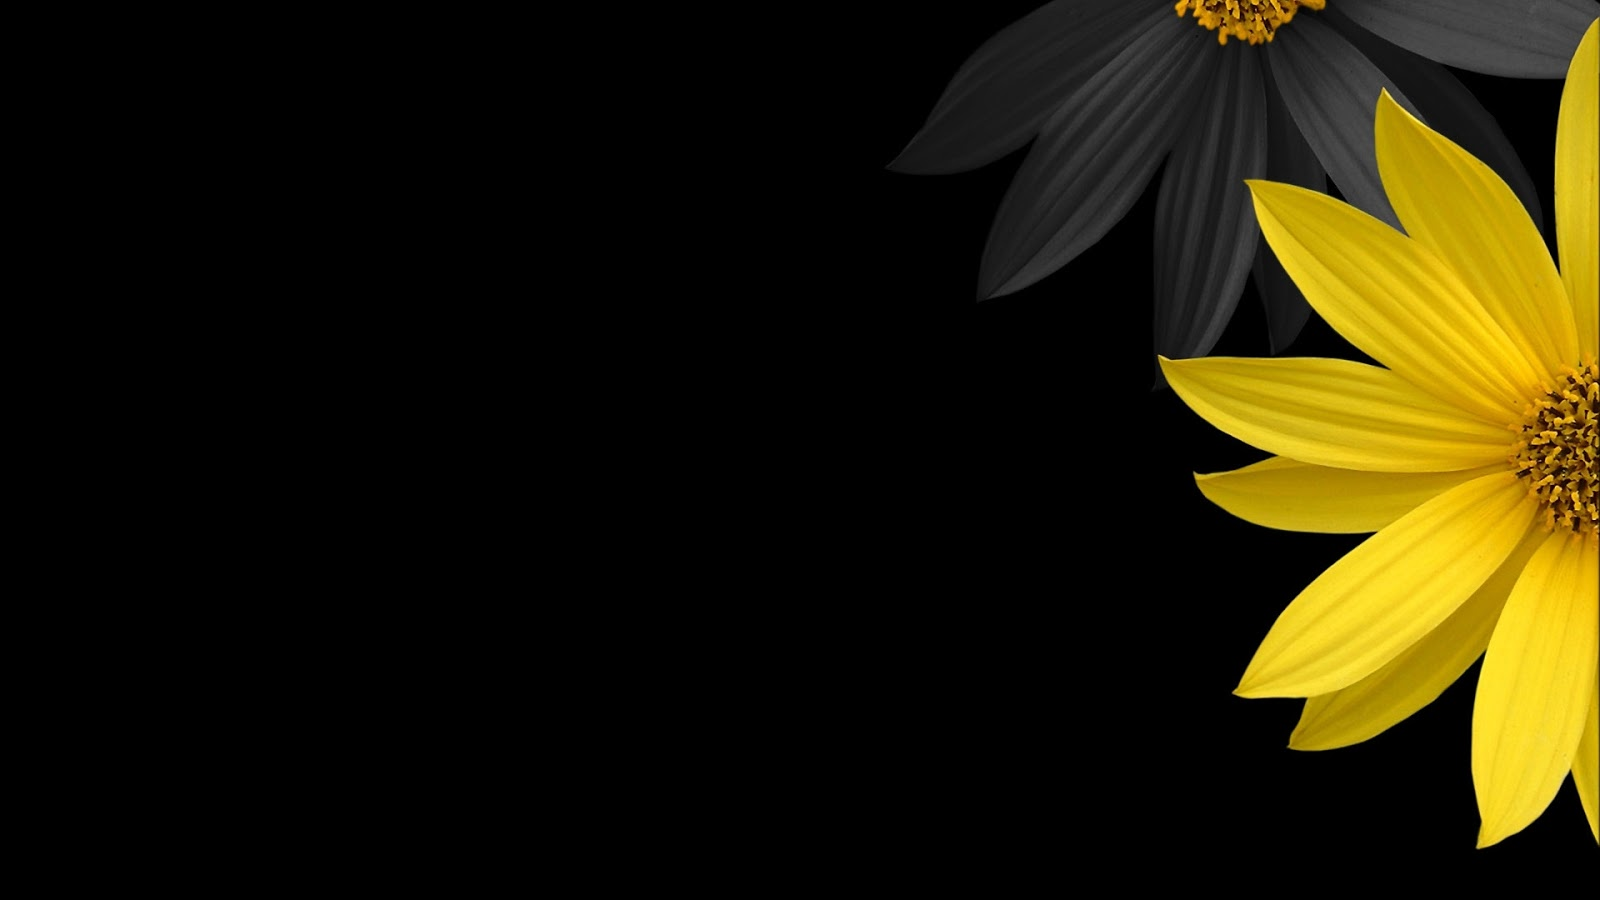 HD Wallpapers 1920x1080 Black Background Yellow Flower 1600x900